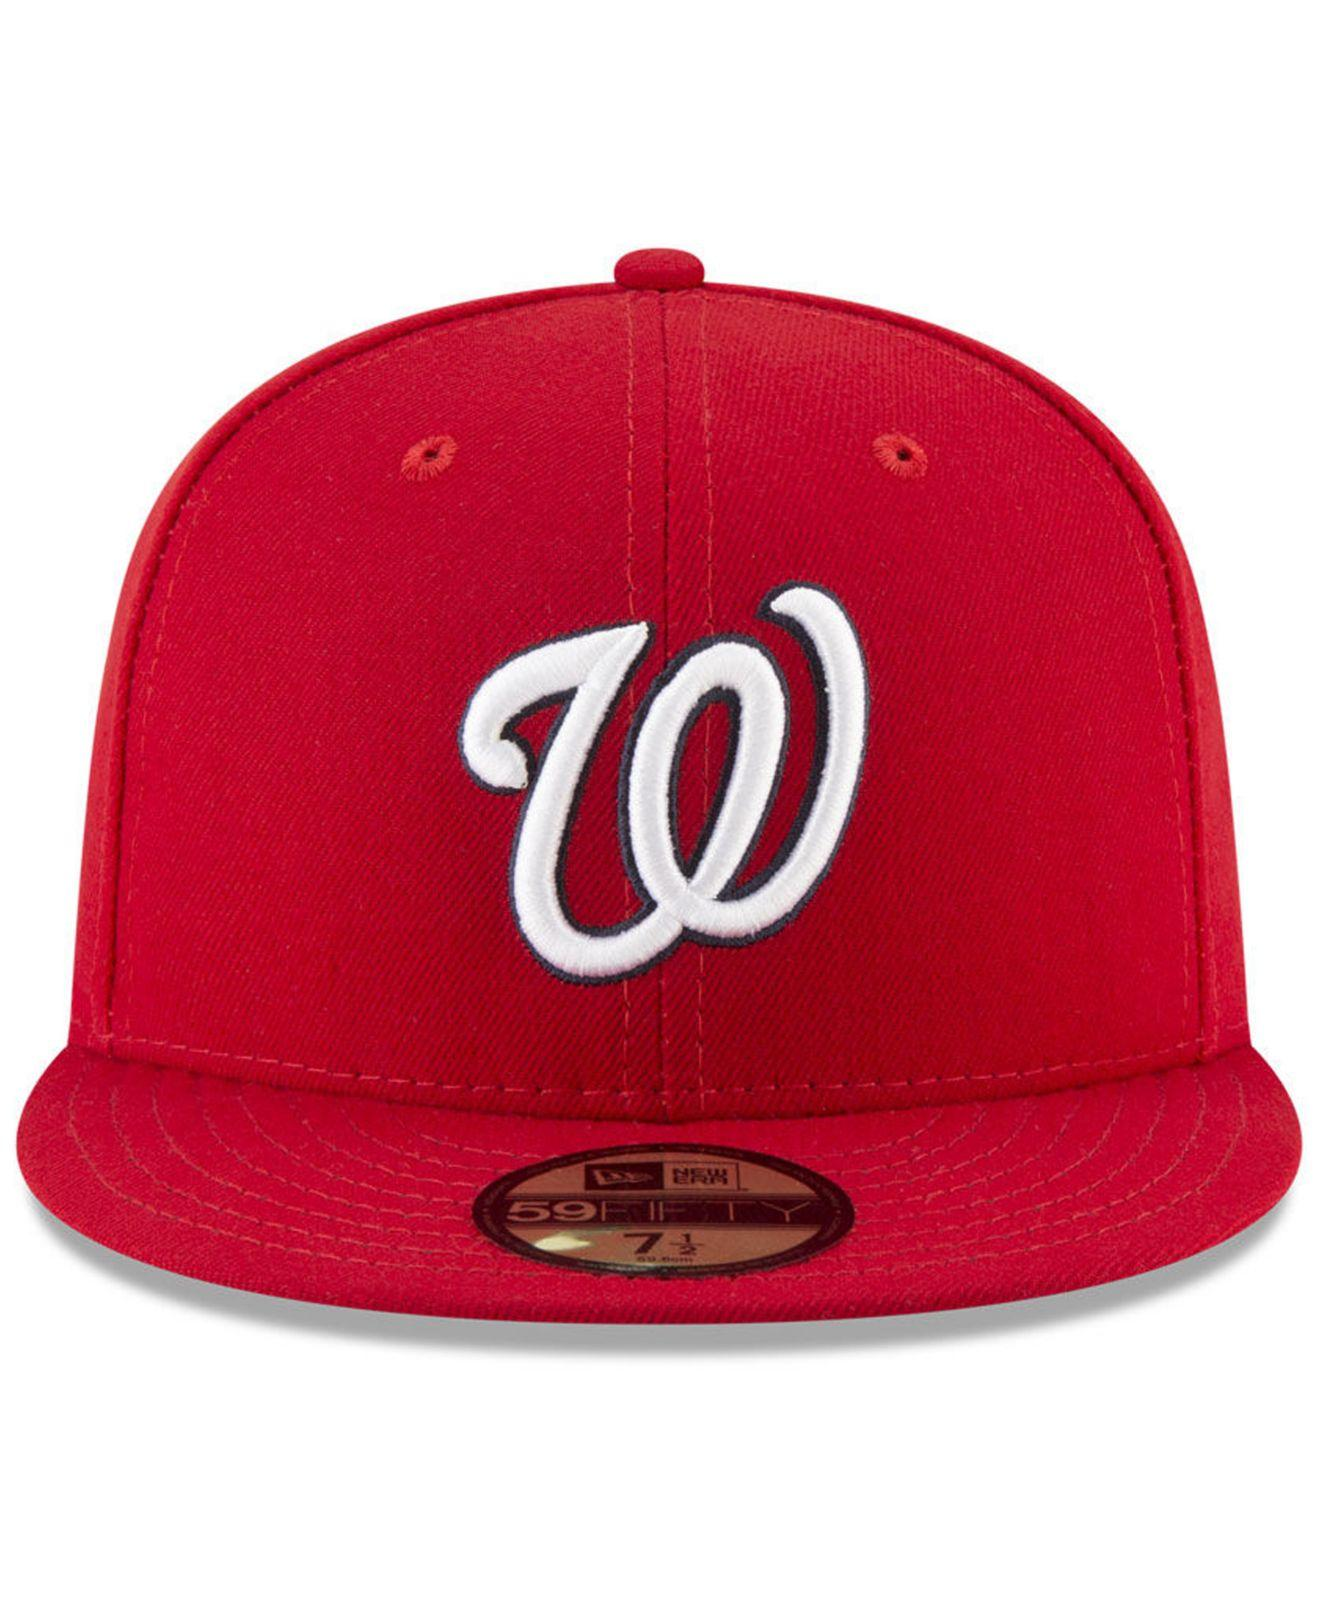 97cbb712555b7 KTZ Washington Nationals 150th Anniversary 59fifty-fitted Cap in Red ...